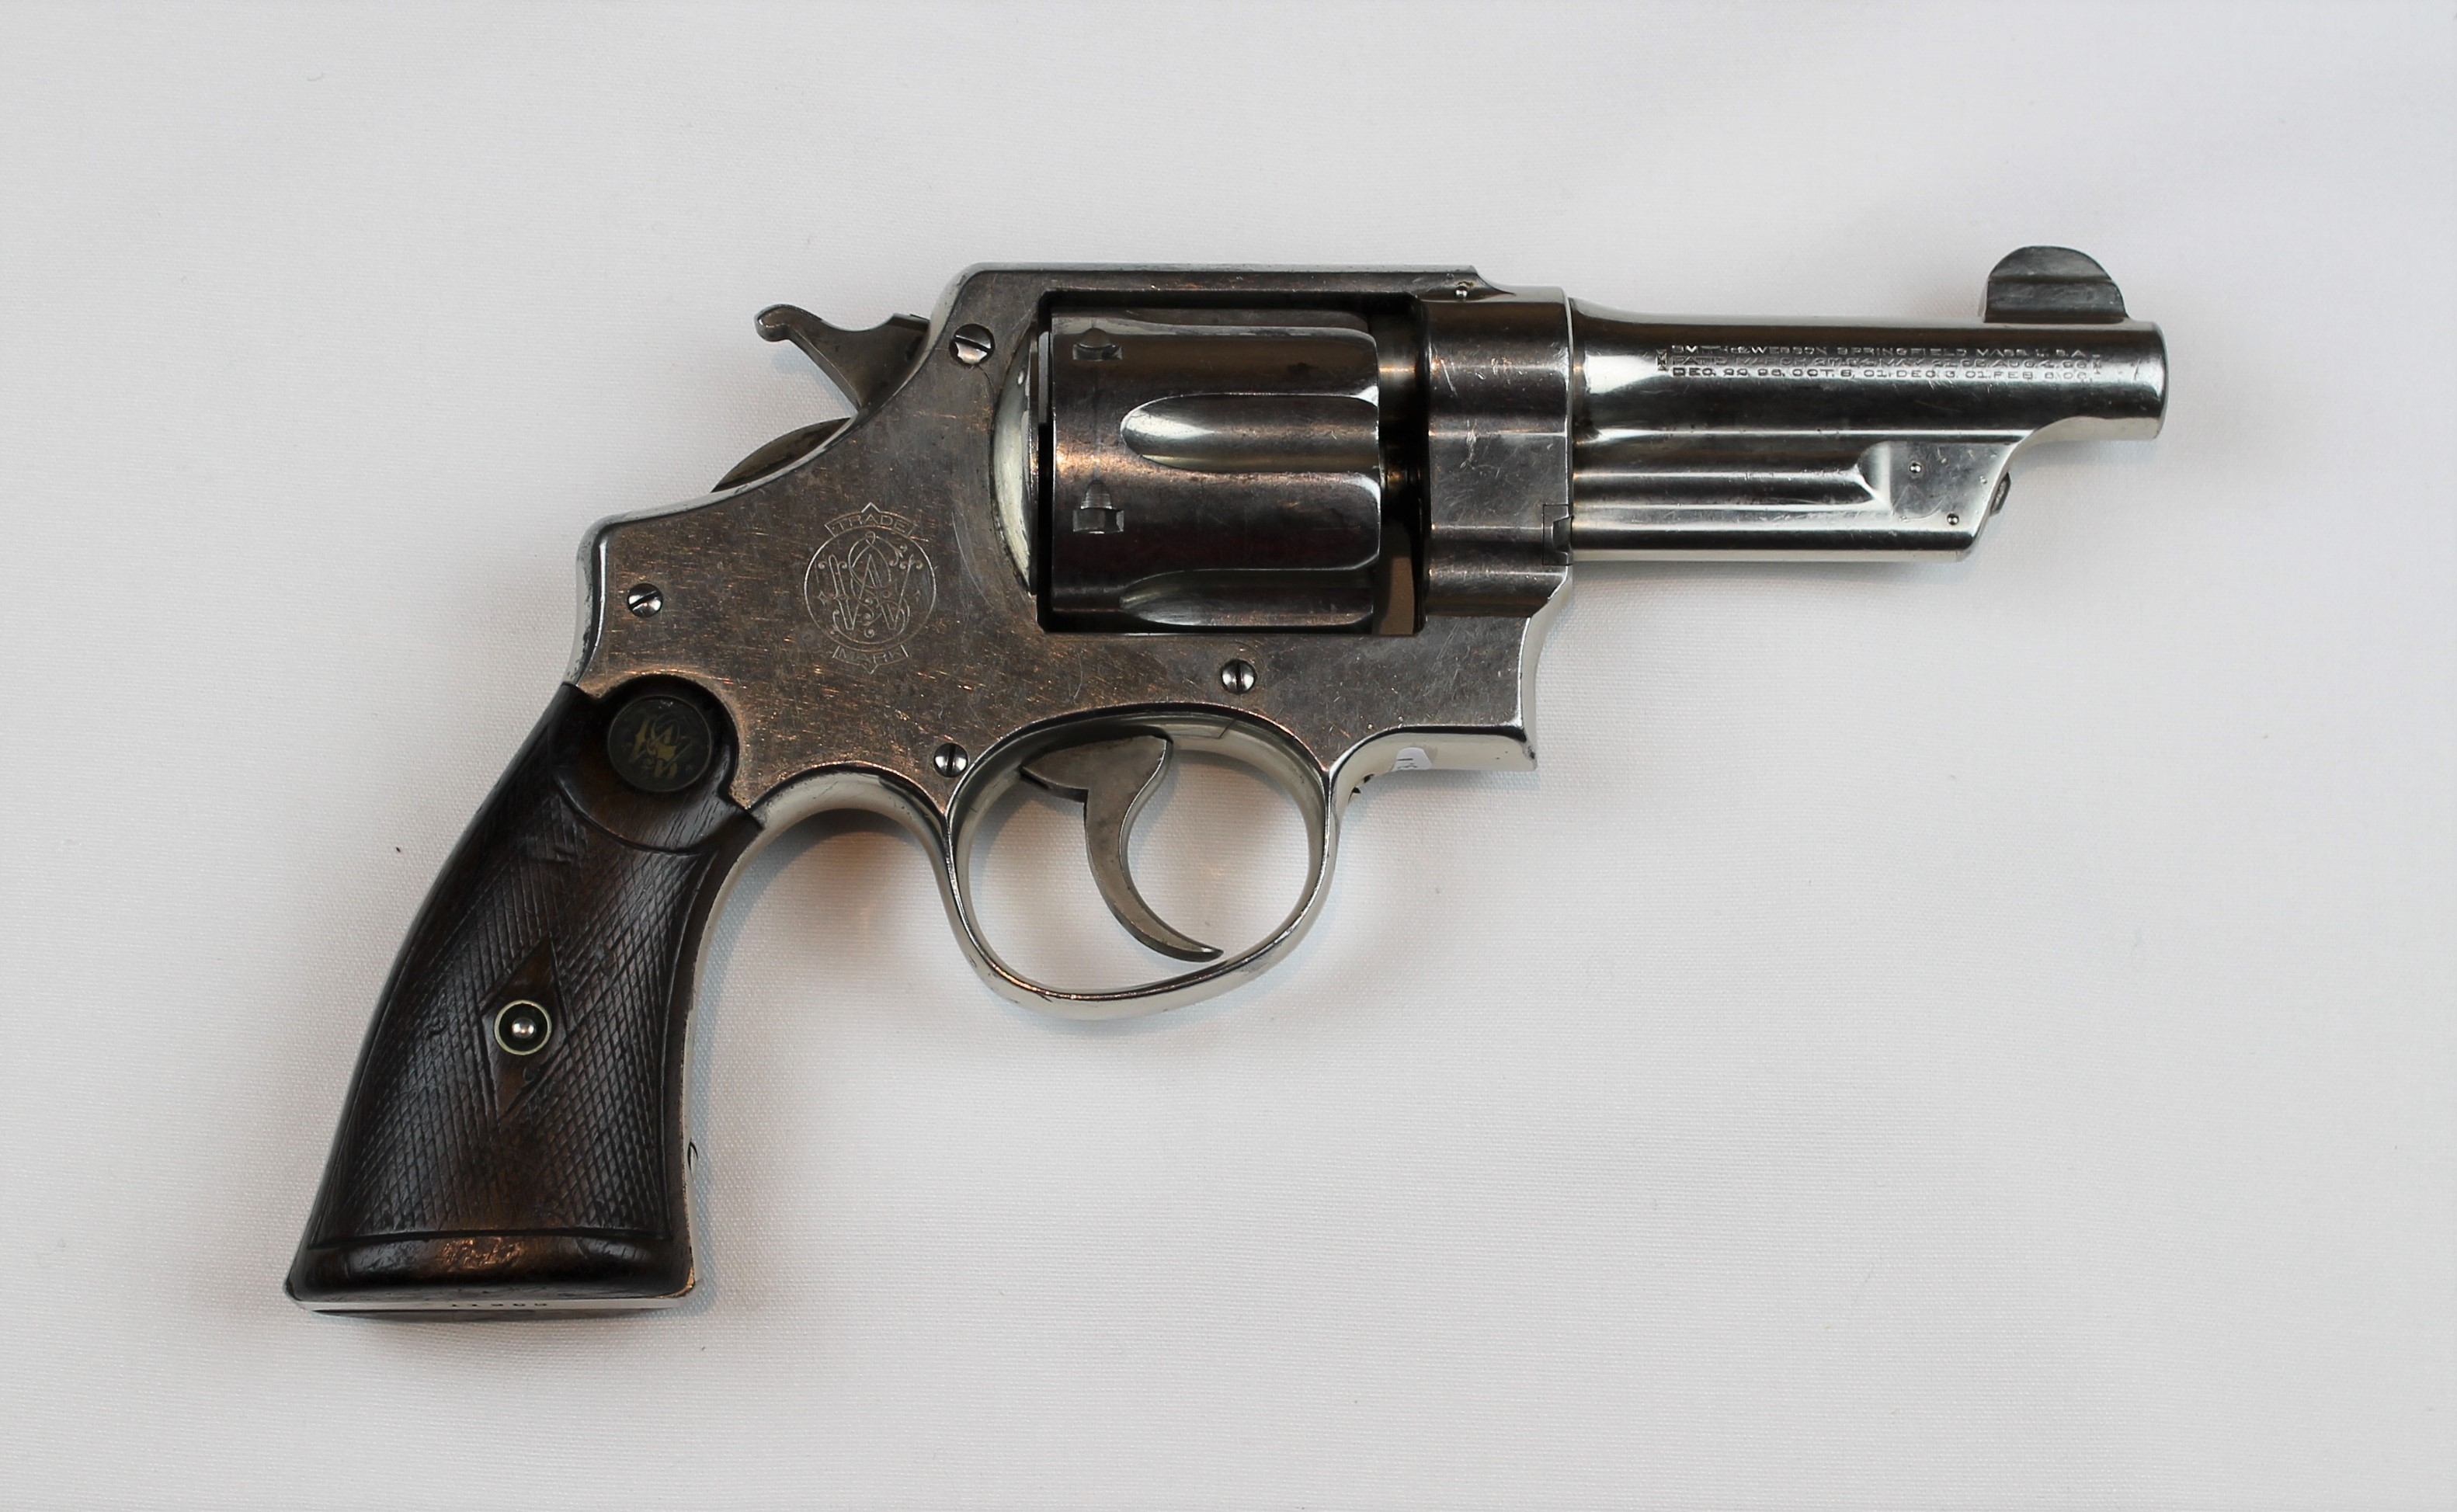 Captain Fox's Smith & Wesson .44 Hand Ejector 1st Model revolver, which he carried with him during this period. Loaned by Clinton G. Egger / Cat. # 1999.023.001